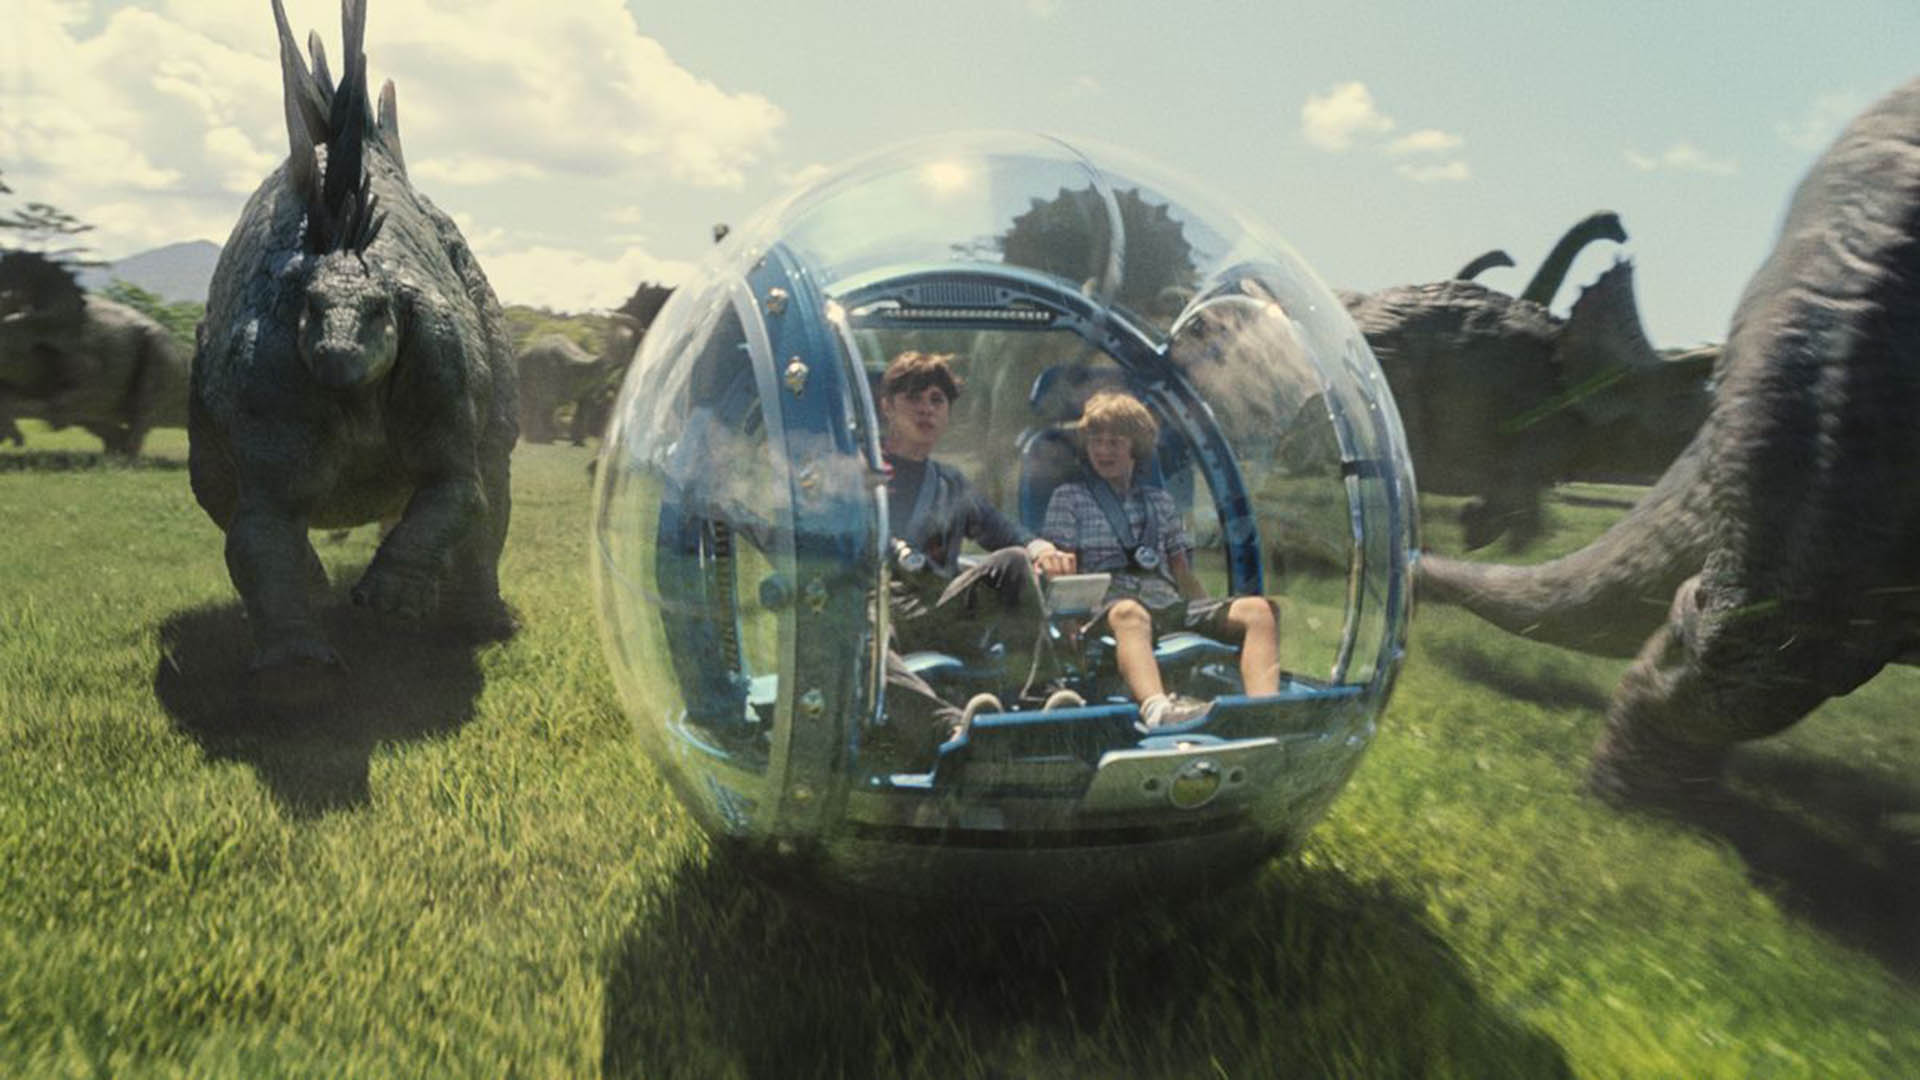 Jurassic World Honored with the Hollywood Visual Effects Award